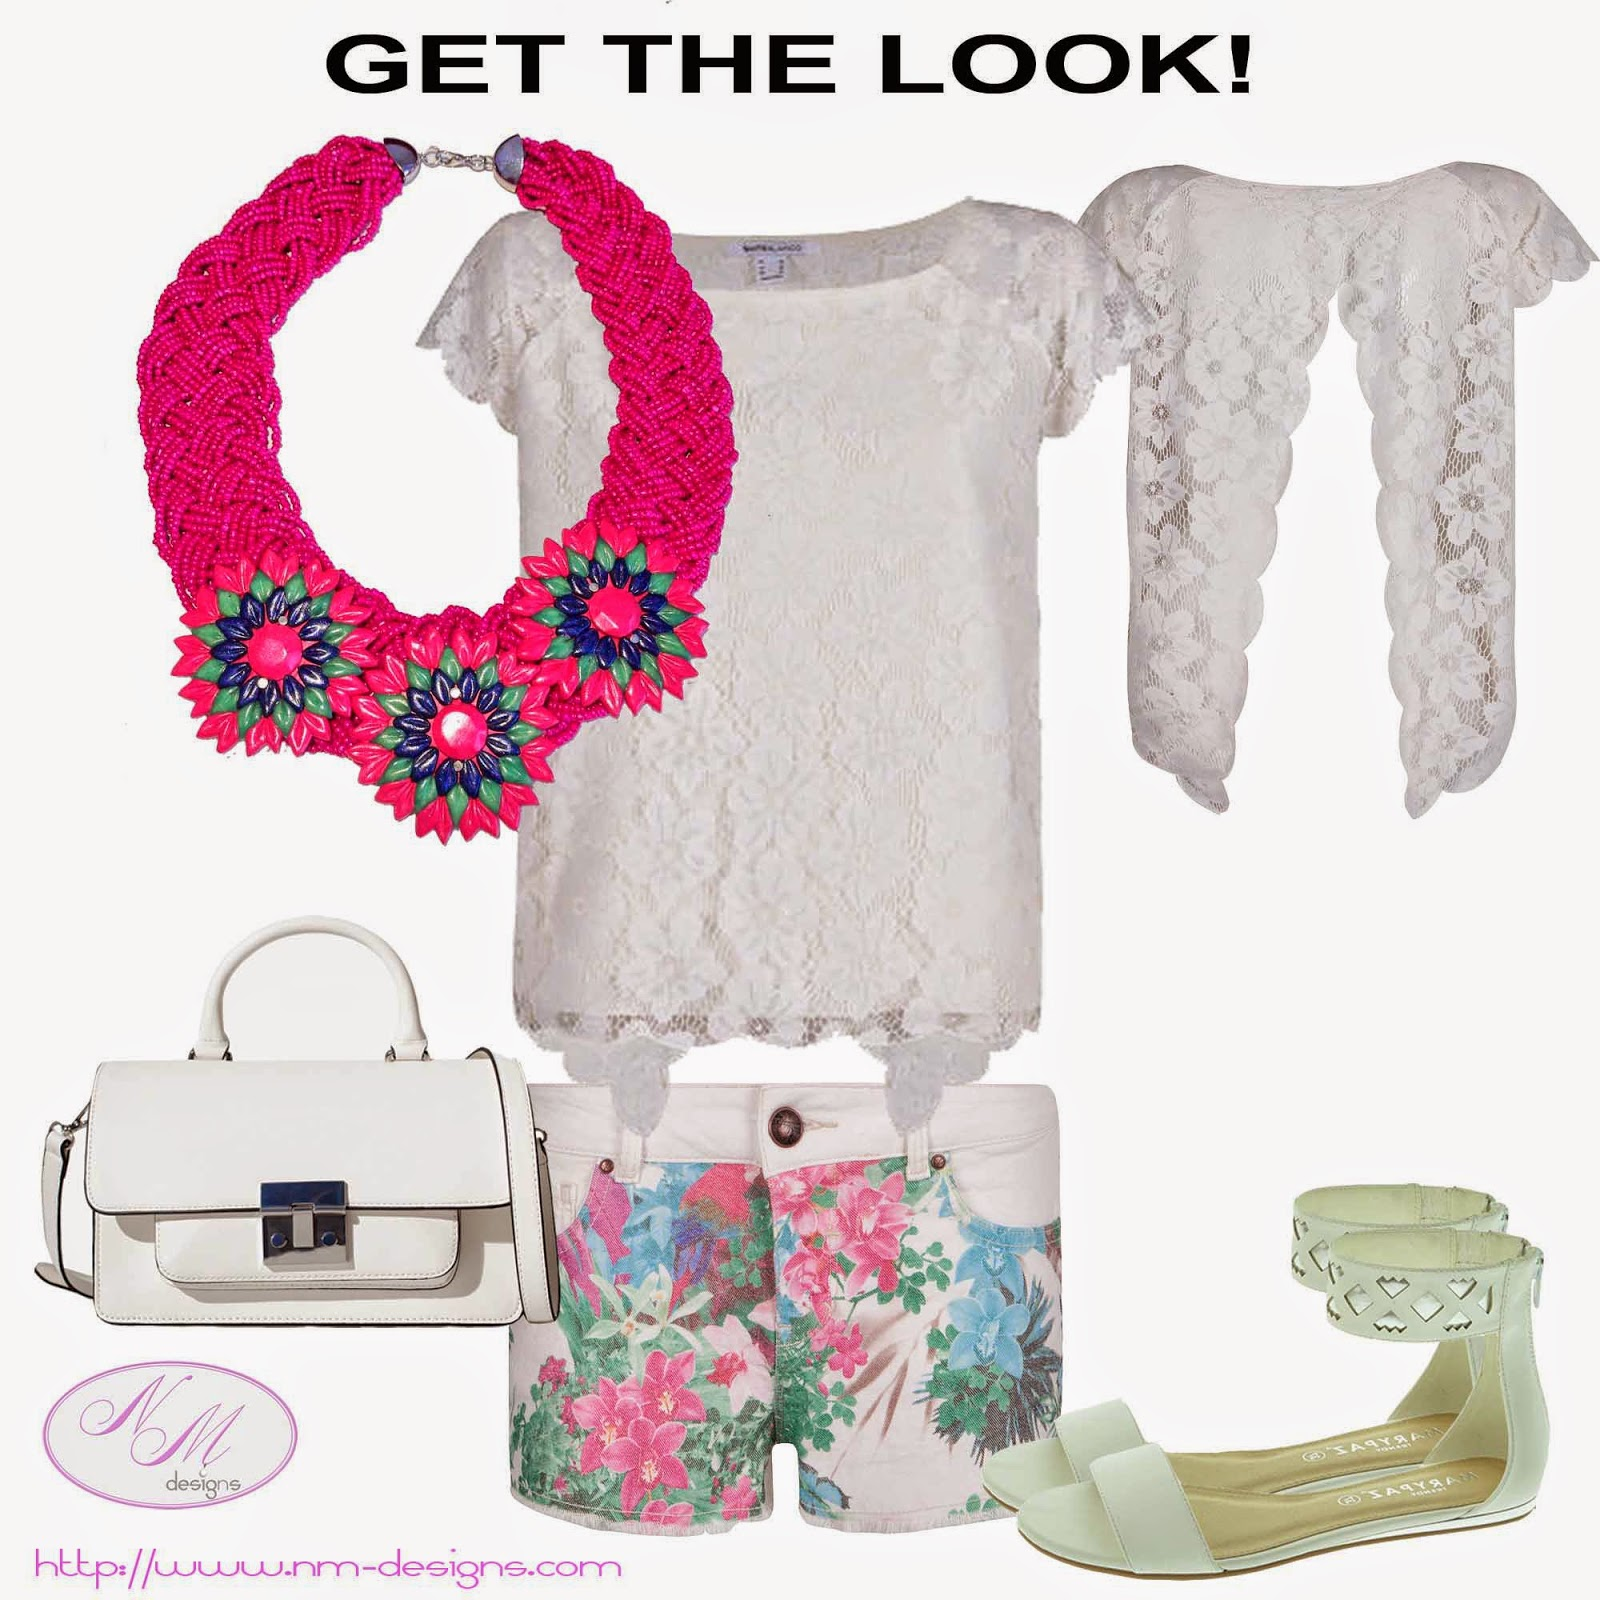 GET THE LOOK from 25h June 2014